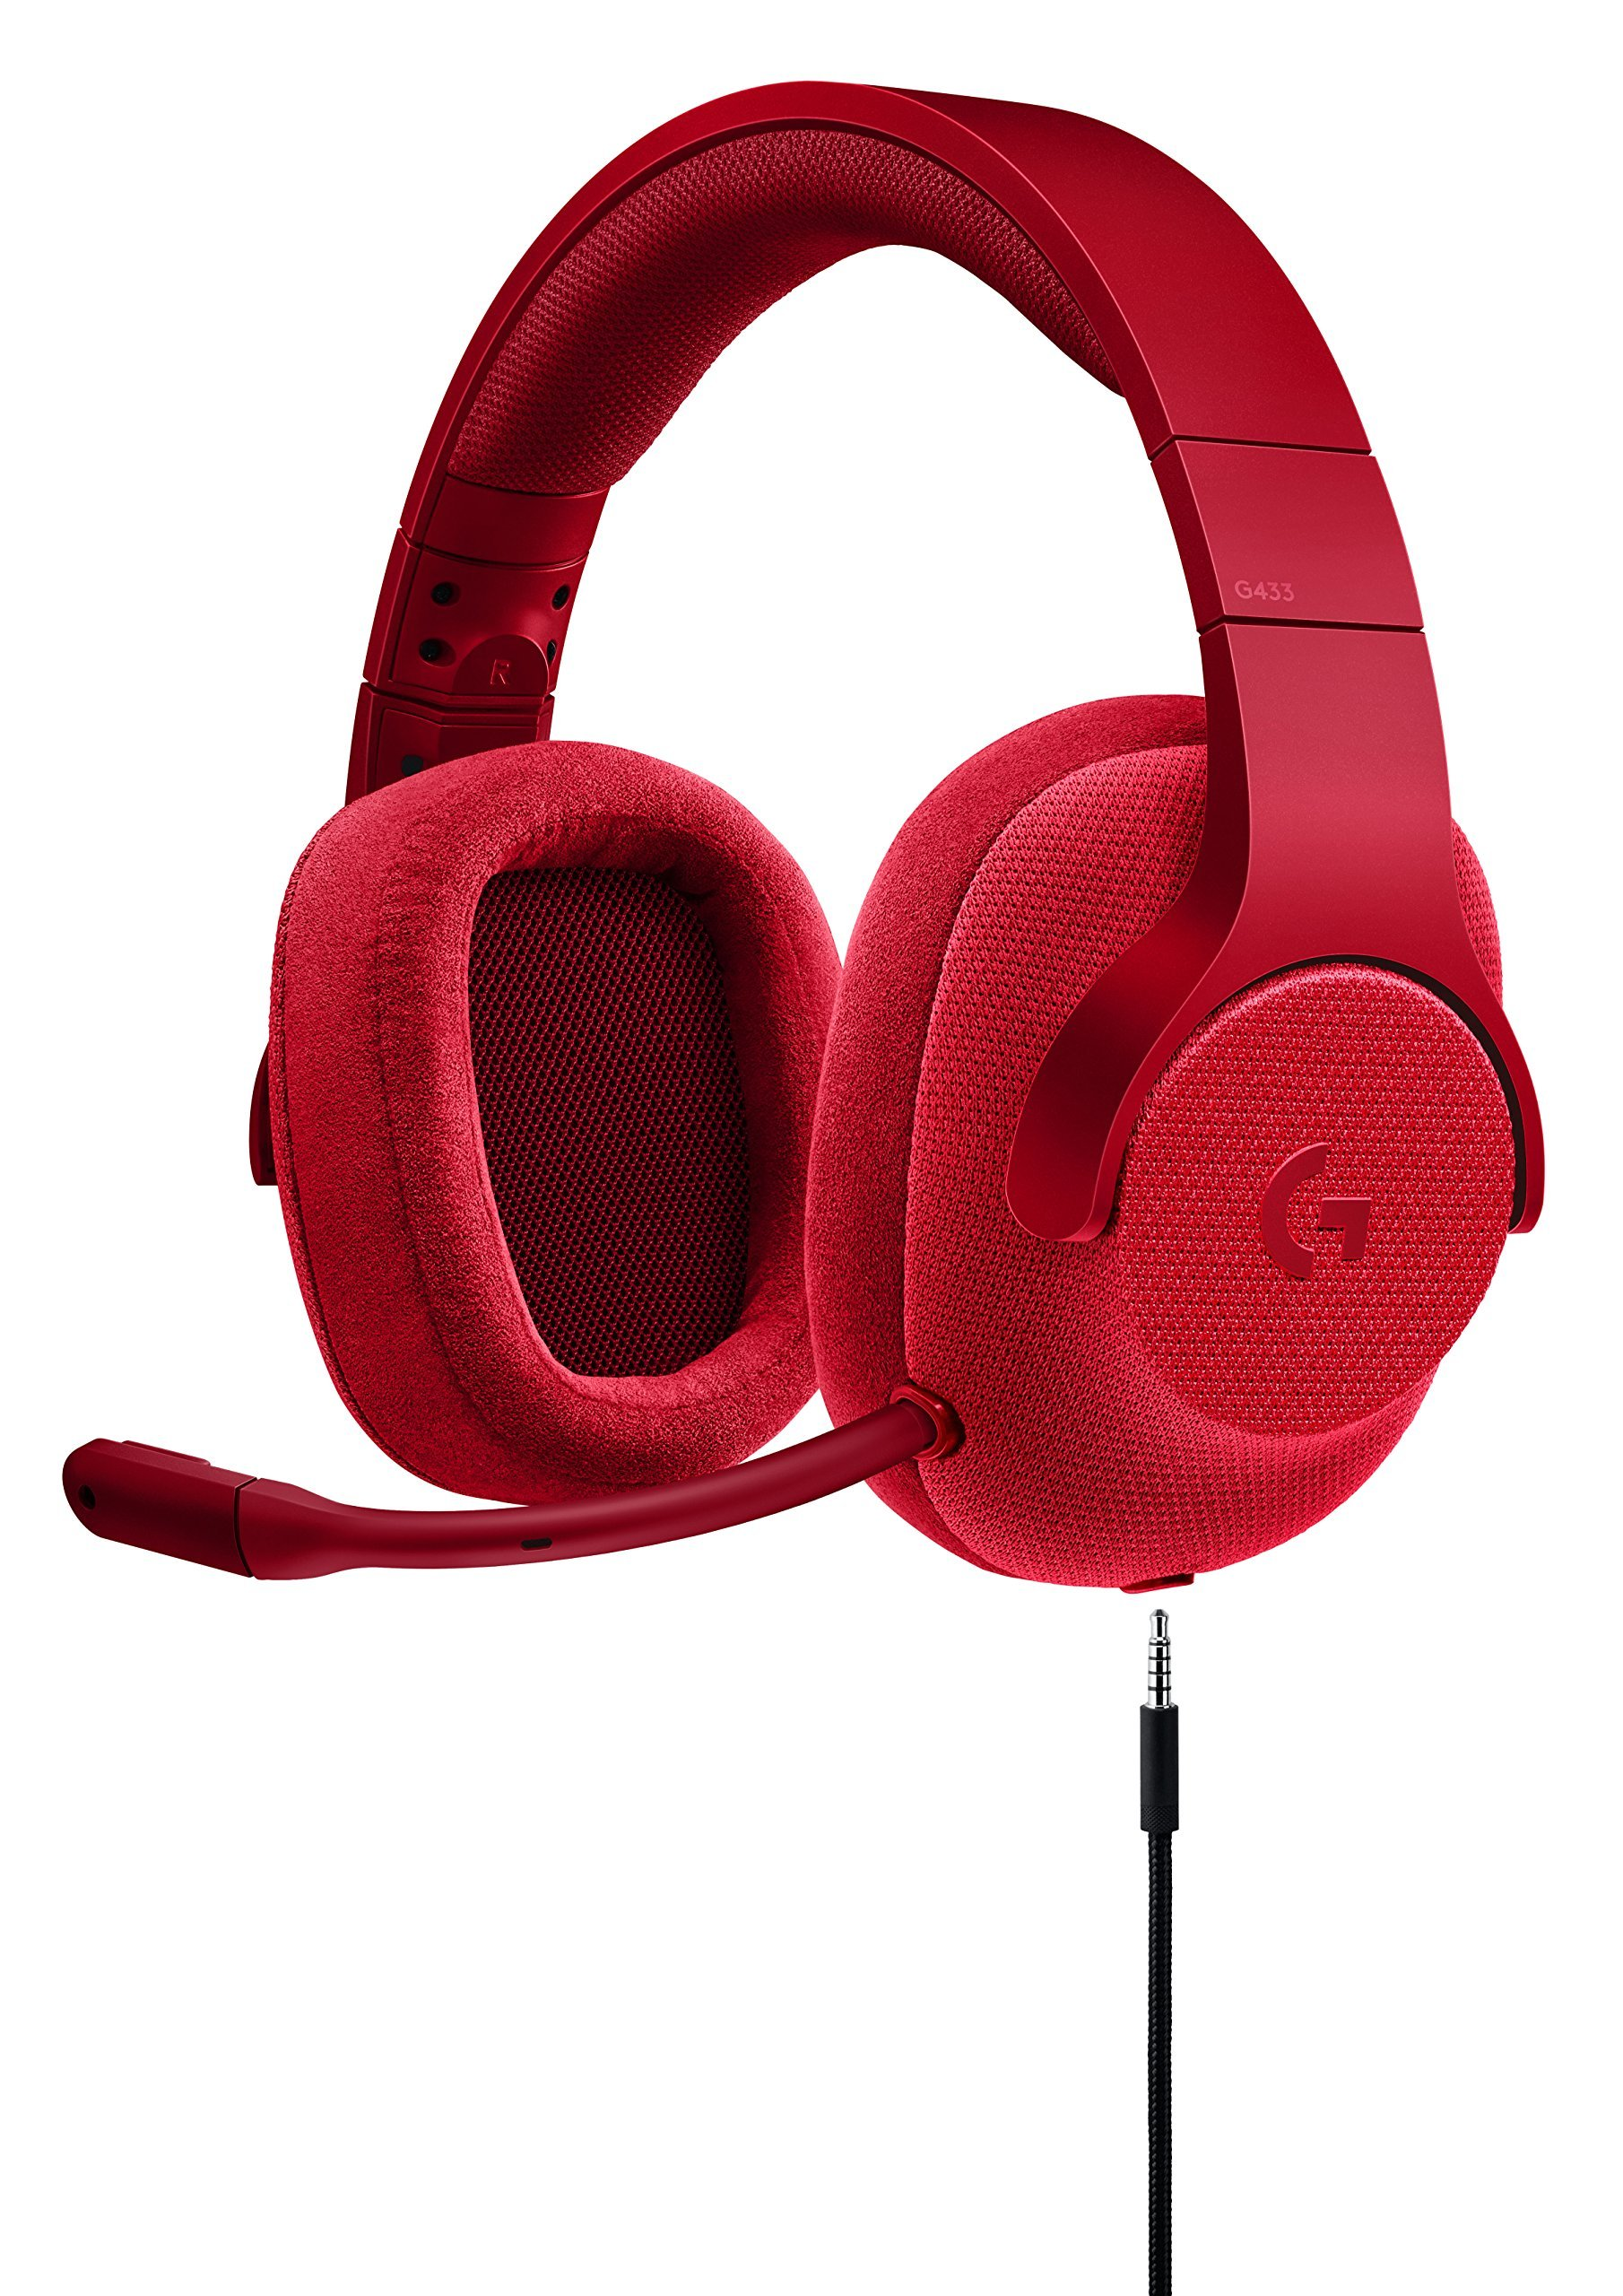 Logitech 981-000650 - G433 Wired 7.1 Gaming Headset (Red) - Renewed by Logitech